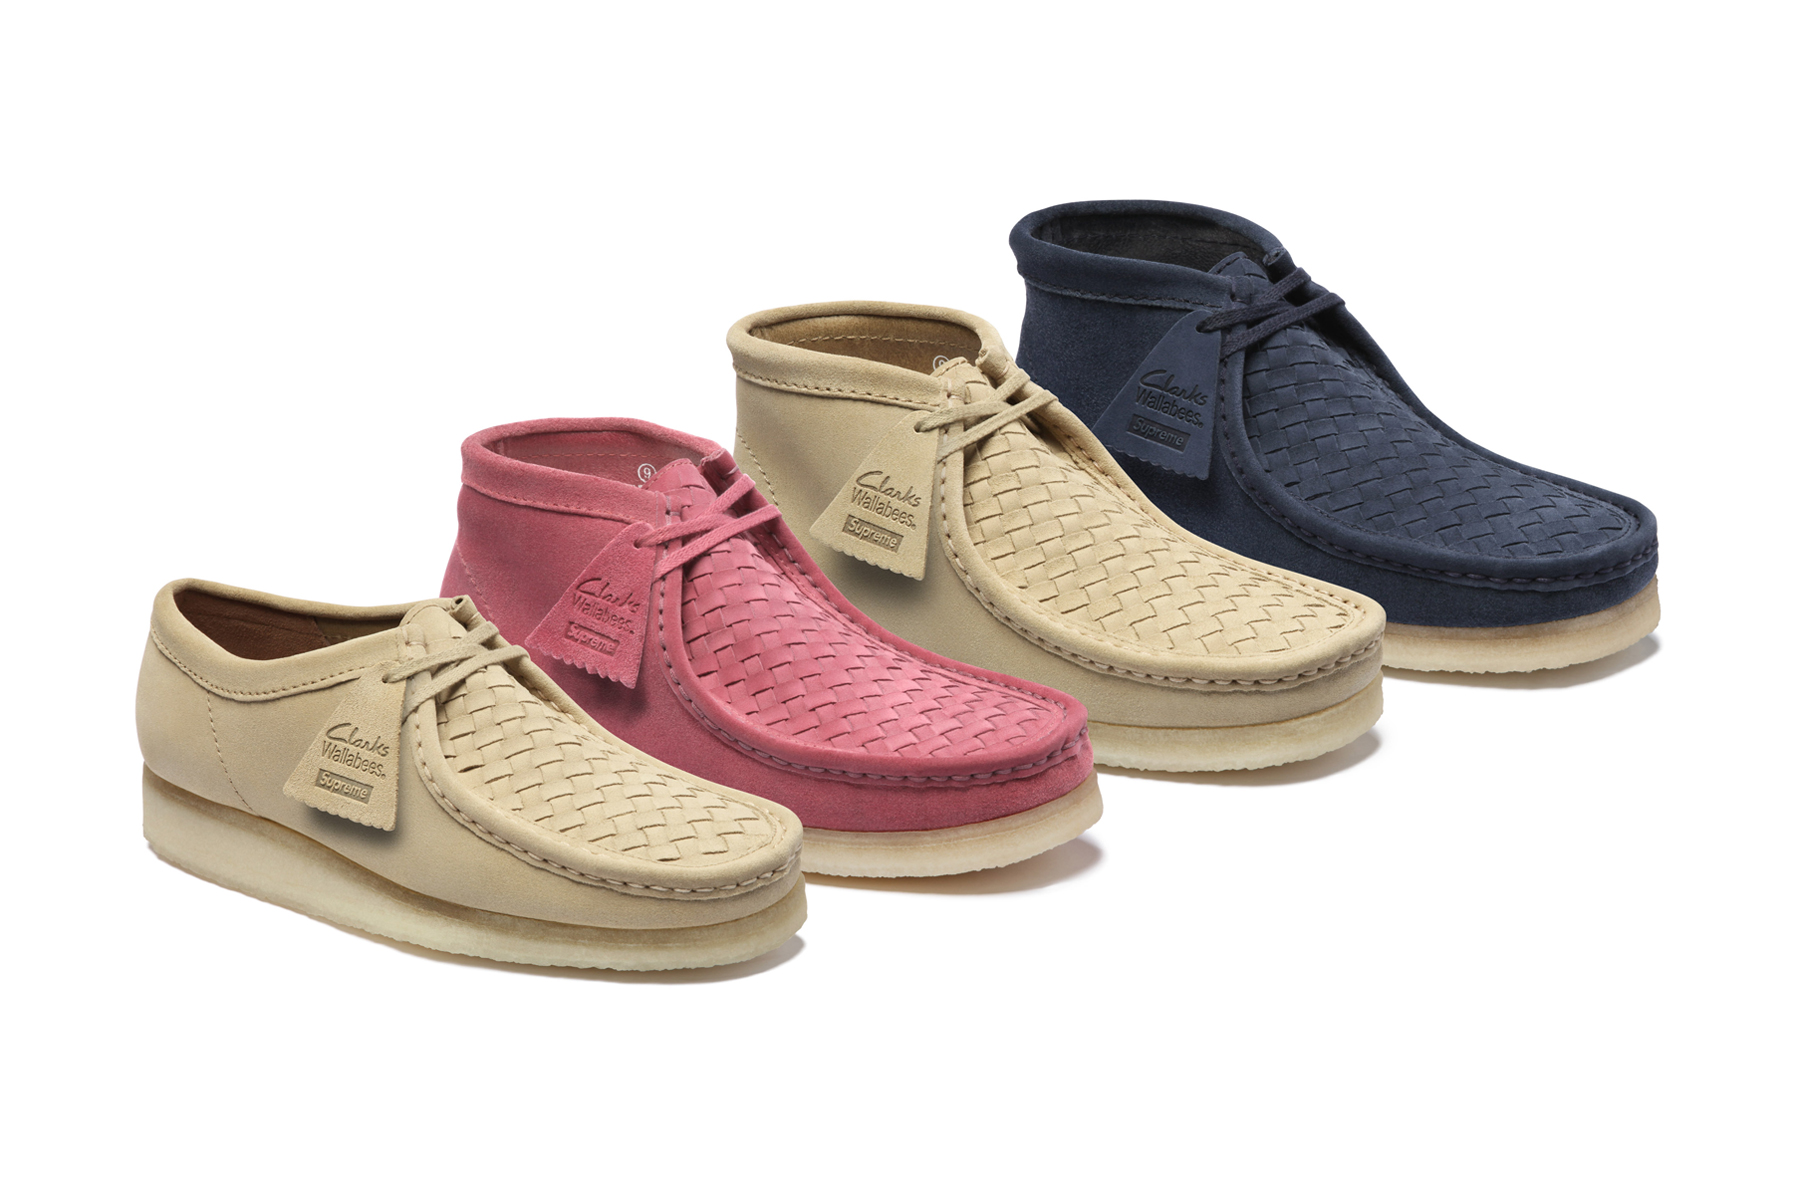 3f9c52ab4c17c6 concepts x clarks limited edition wallabees